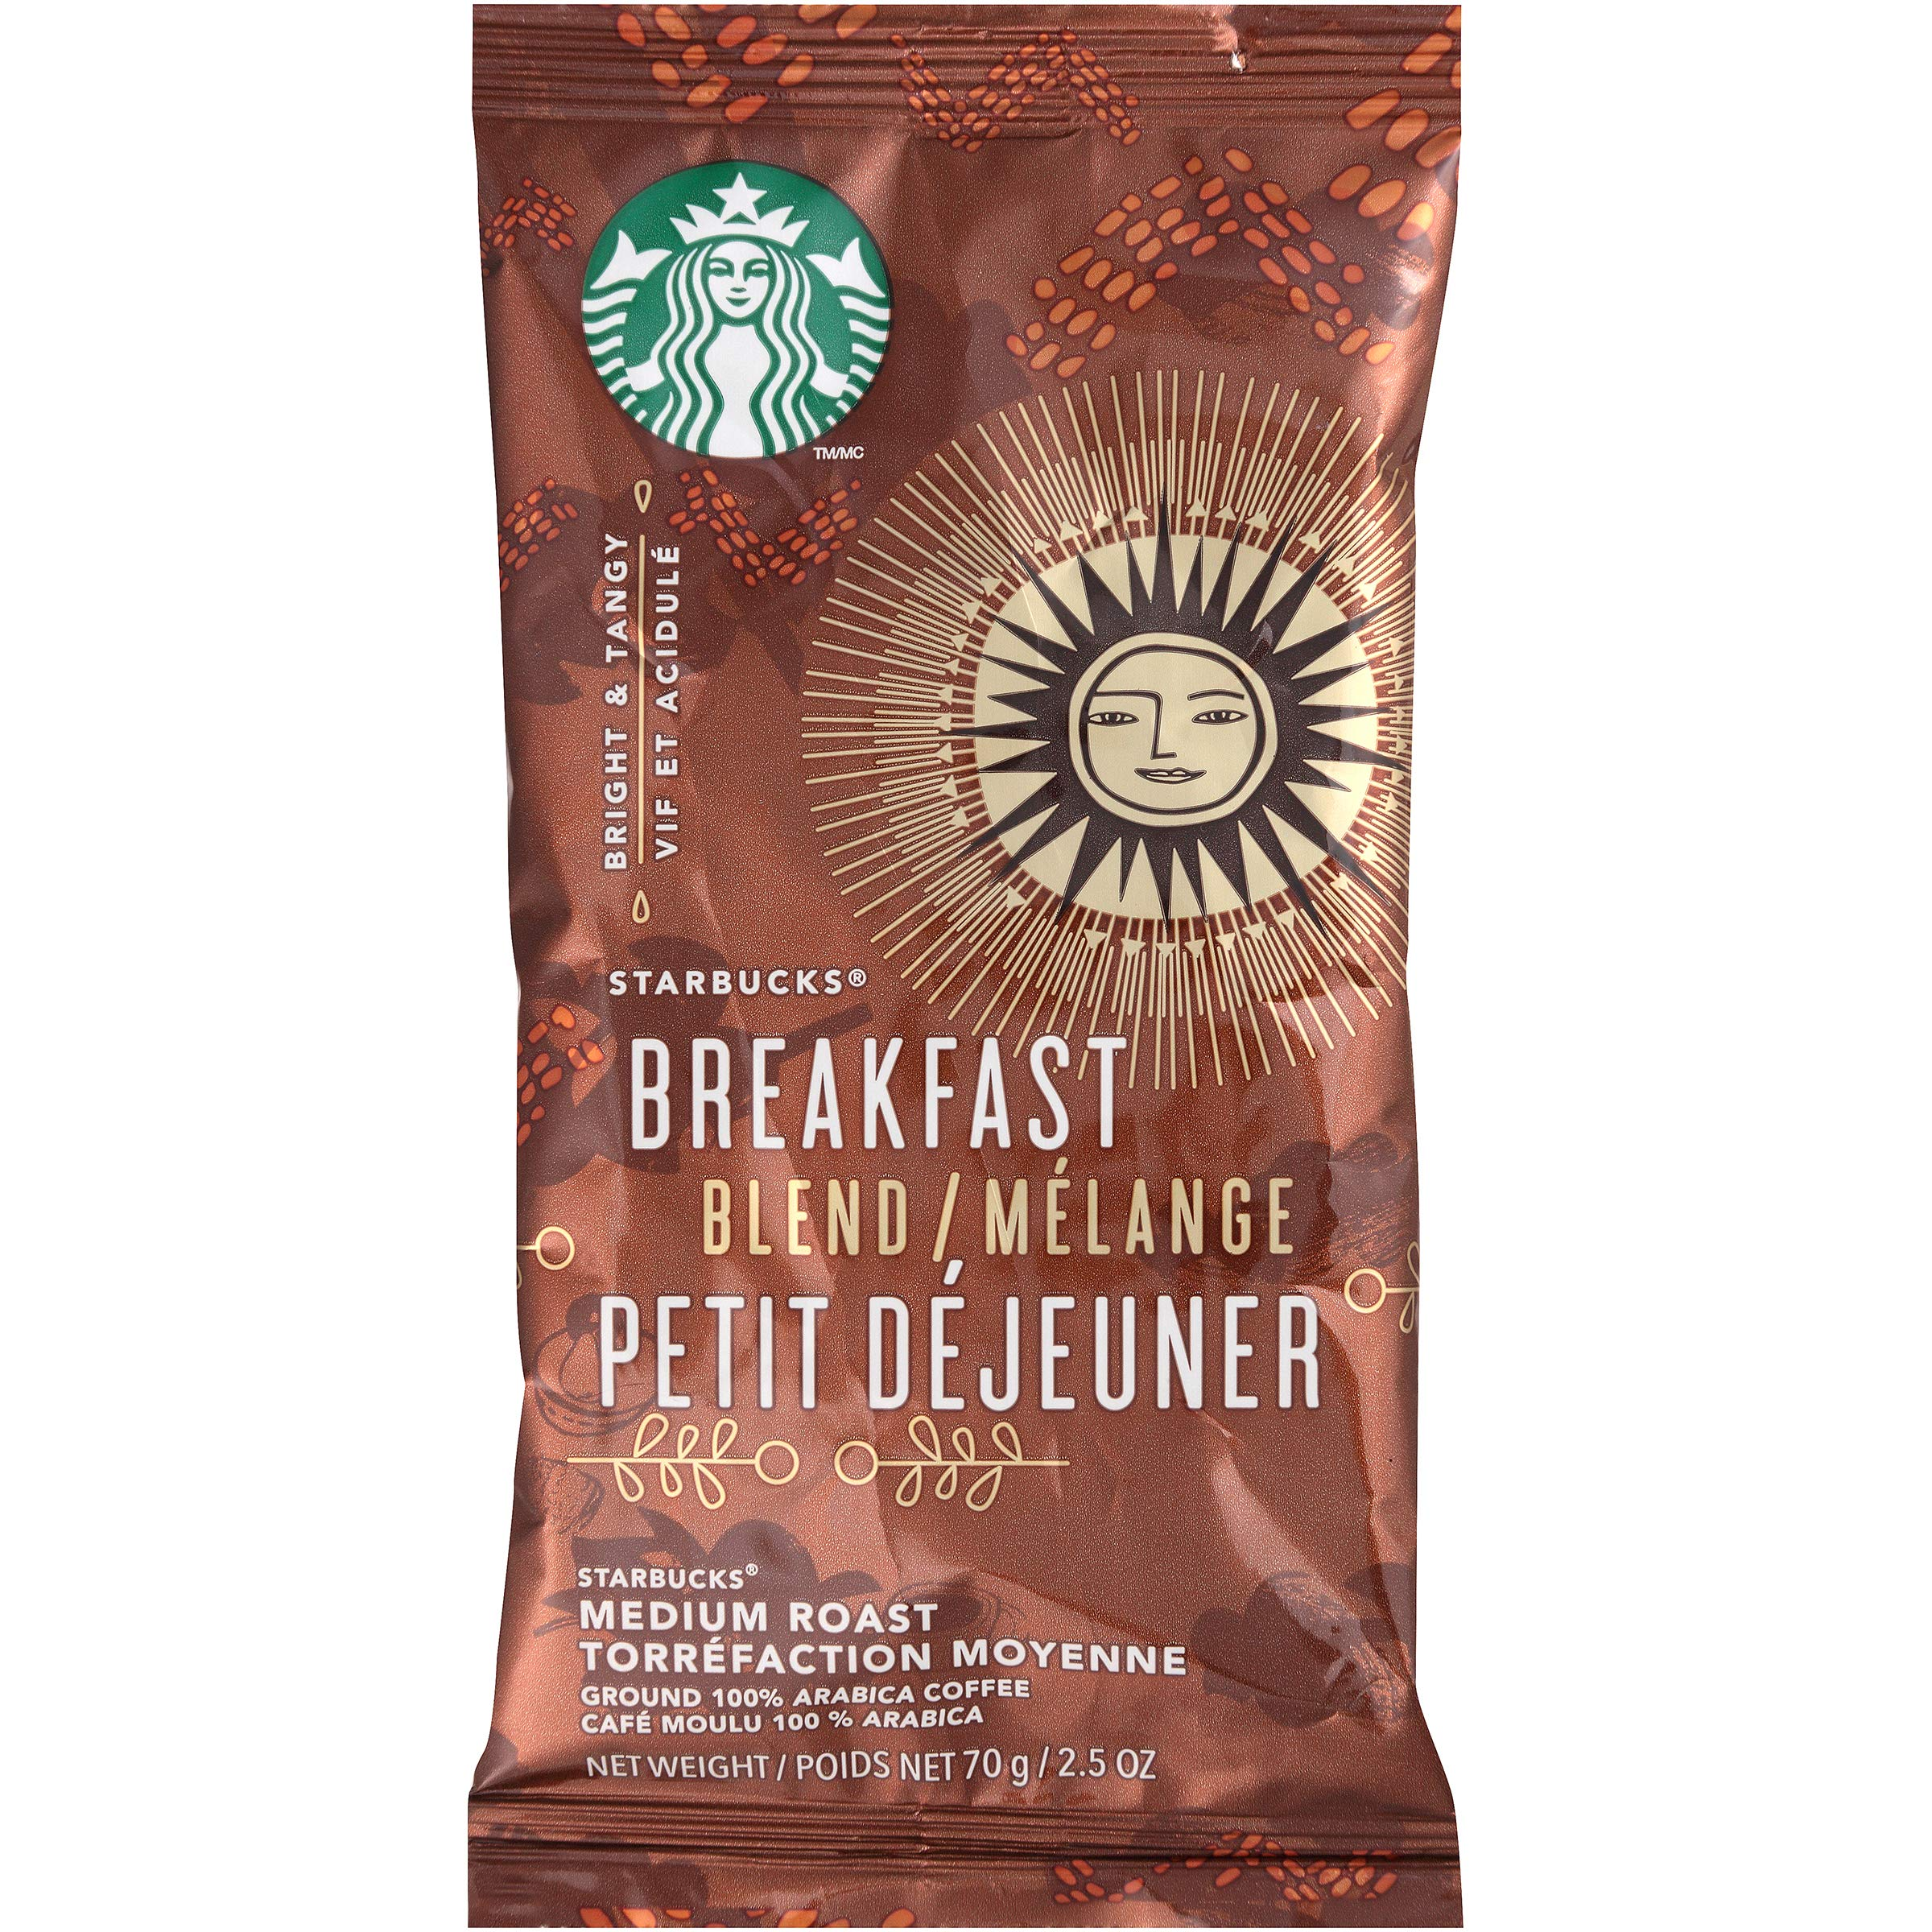 Starbucks Pillow Pack, Breakfast Blend, 72 Individually Wrapped Packs of 2.5 oz. (360 total oz.) by Starbucks (Image #1)